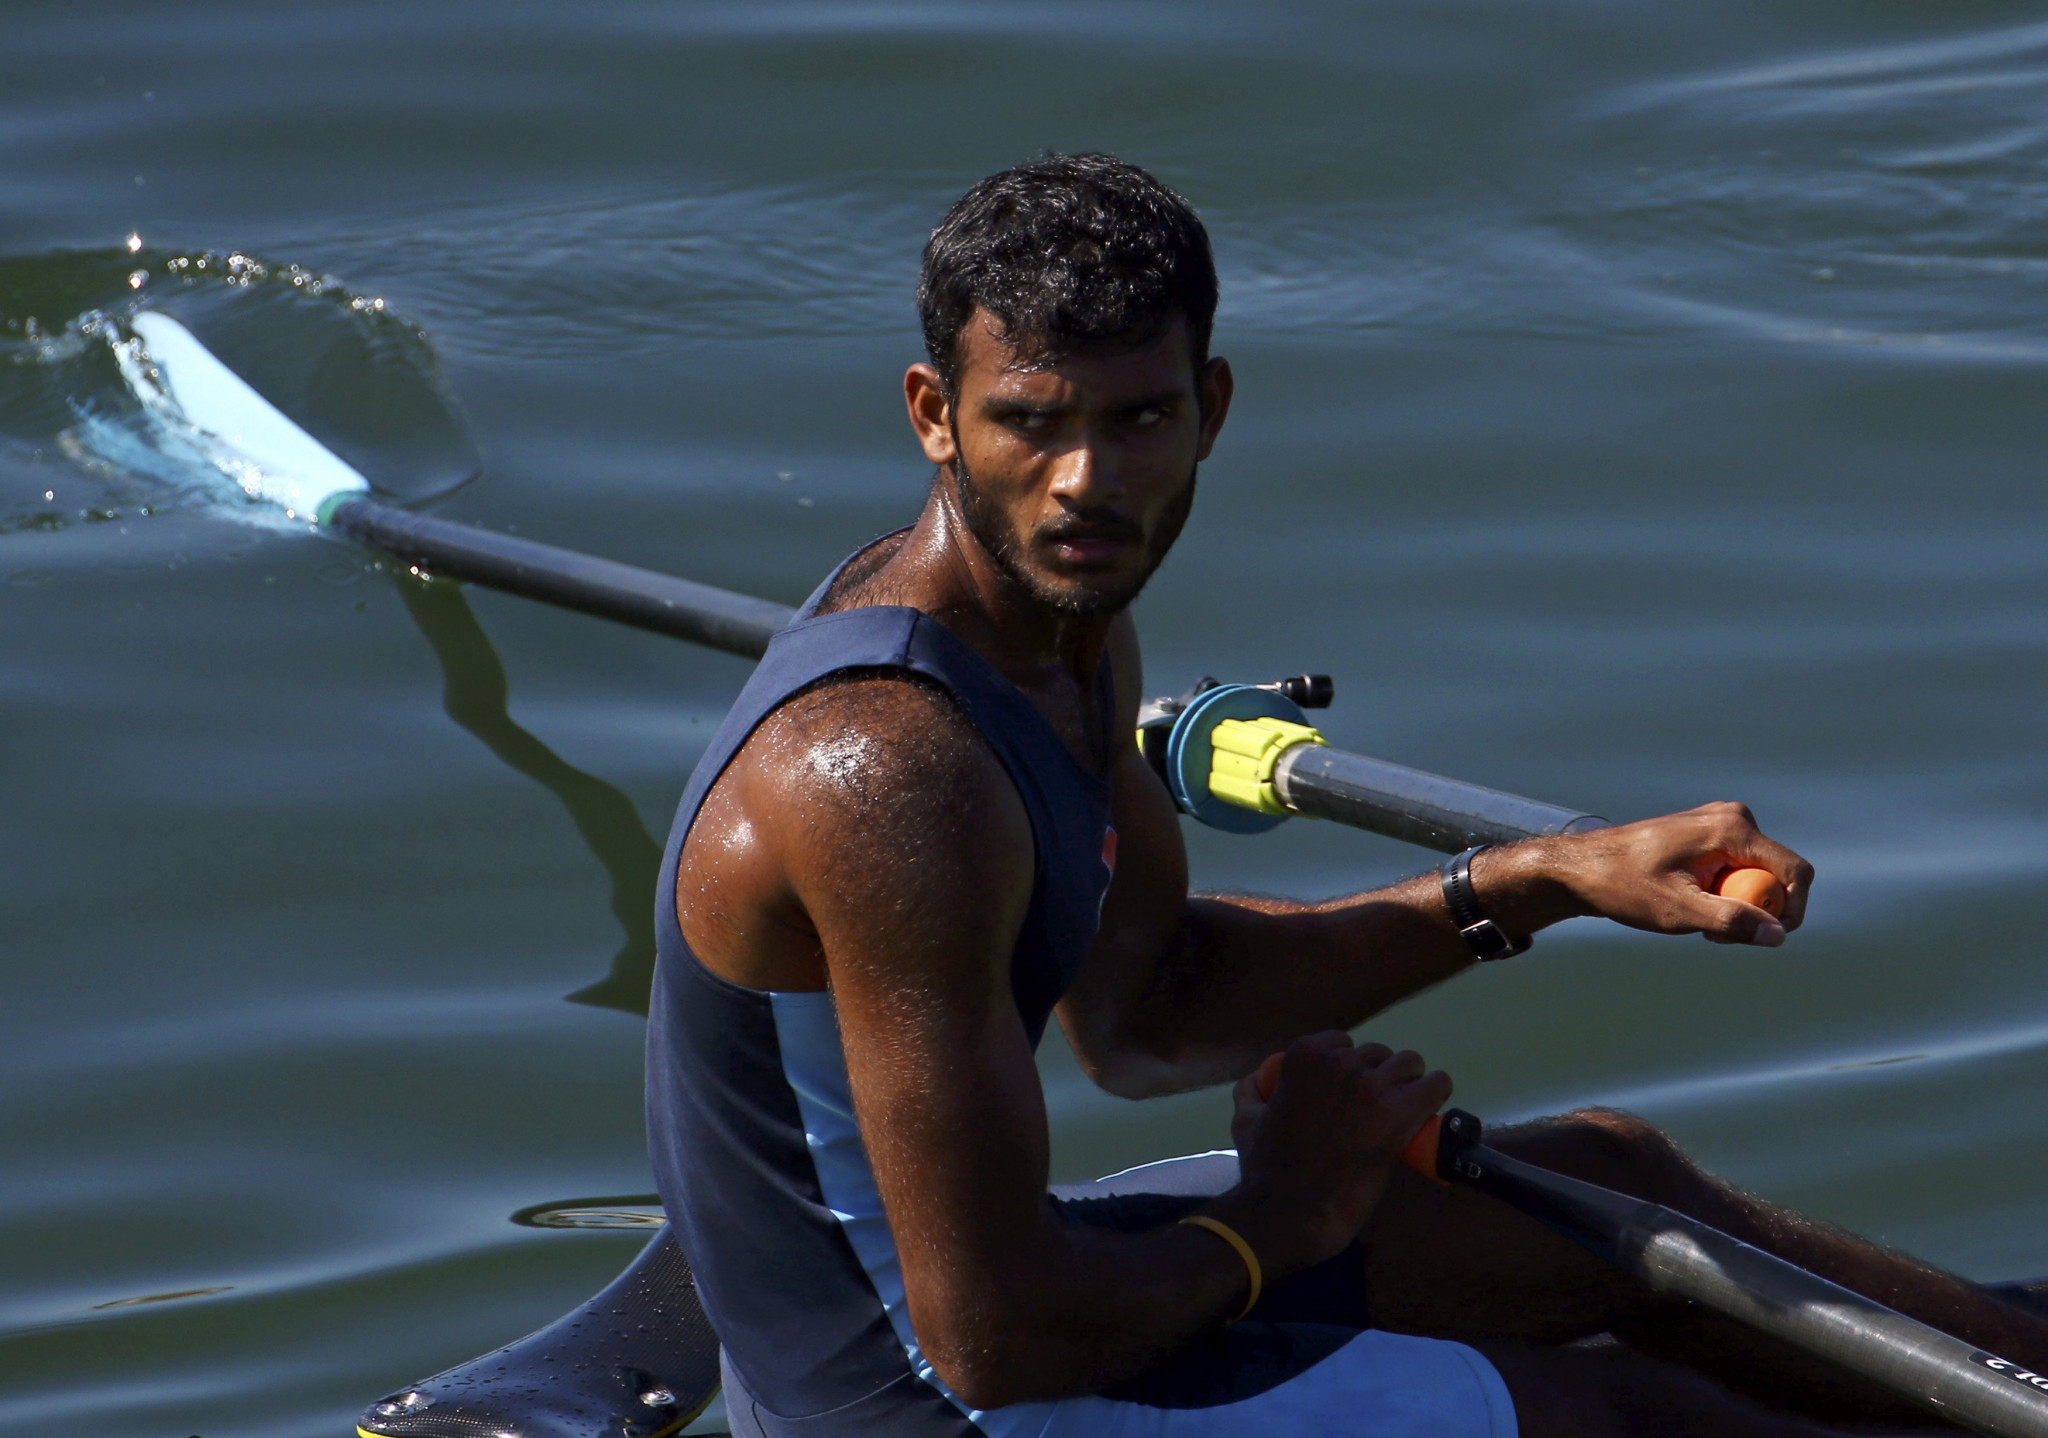 The lifting of Dattu Baban Bhokanal's ban paves the way for him to compete at the FISA Asia and Oceania Olympic Qualification Regatta in April ©Getty Images